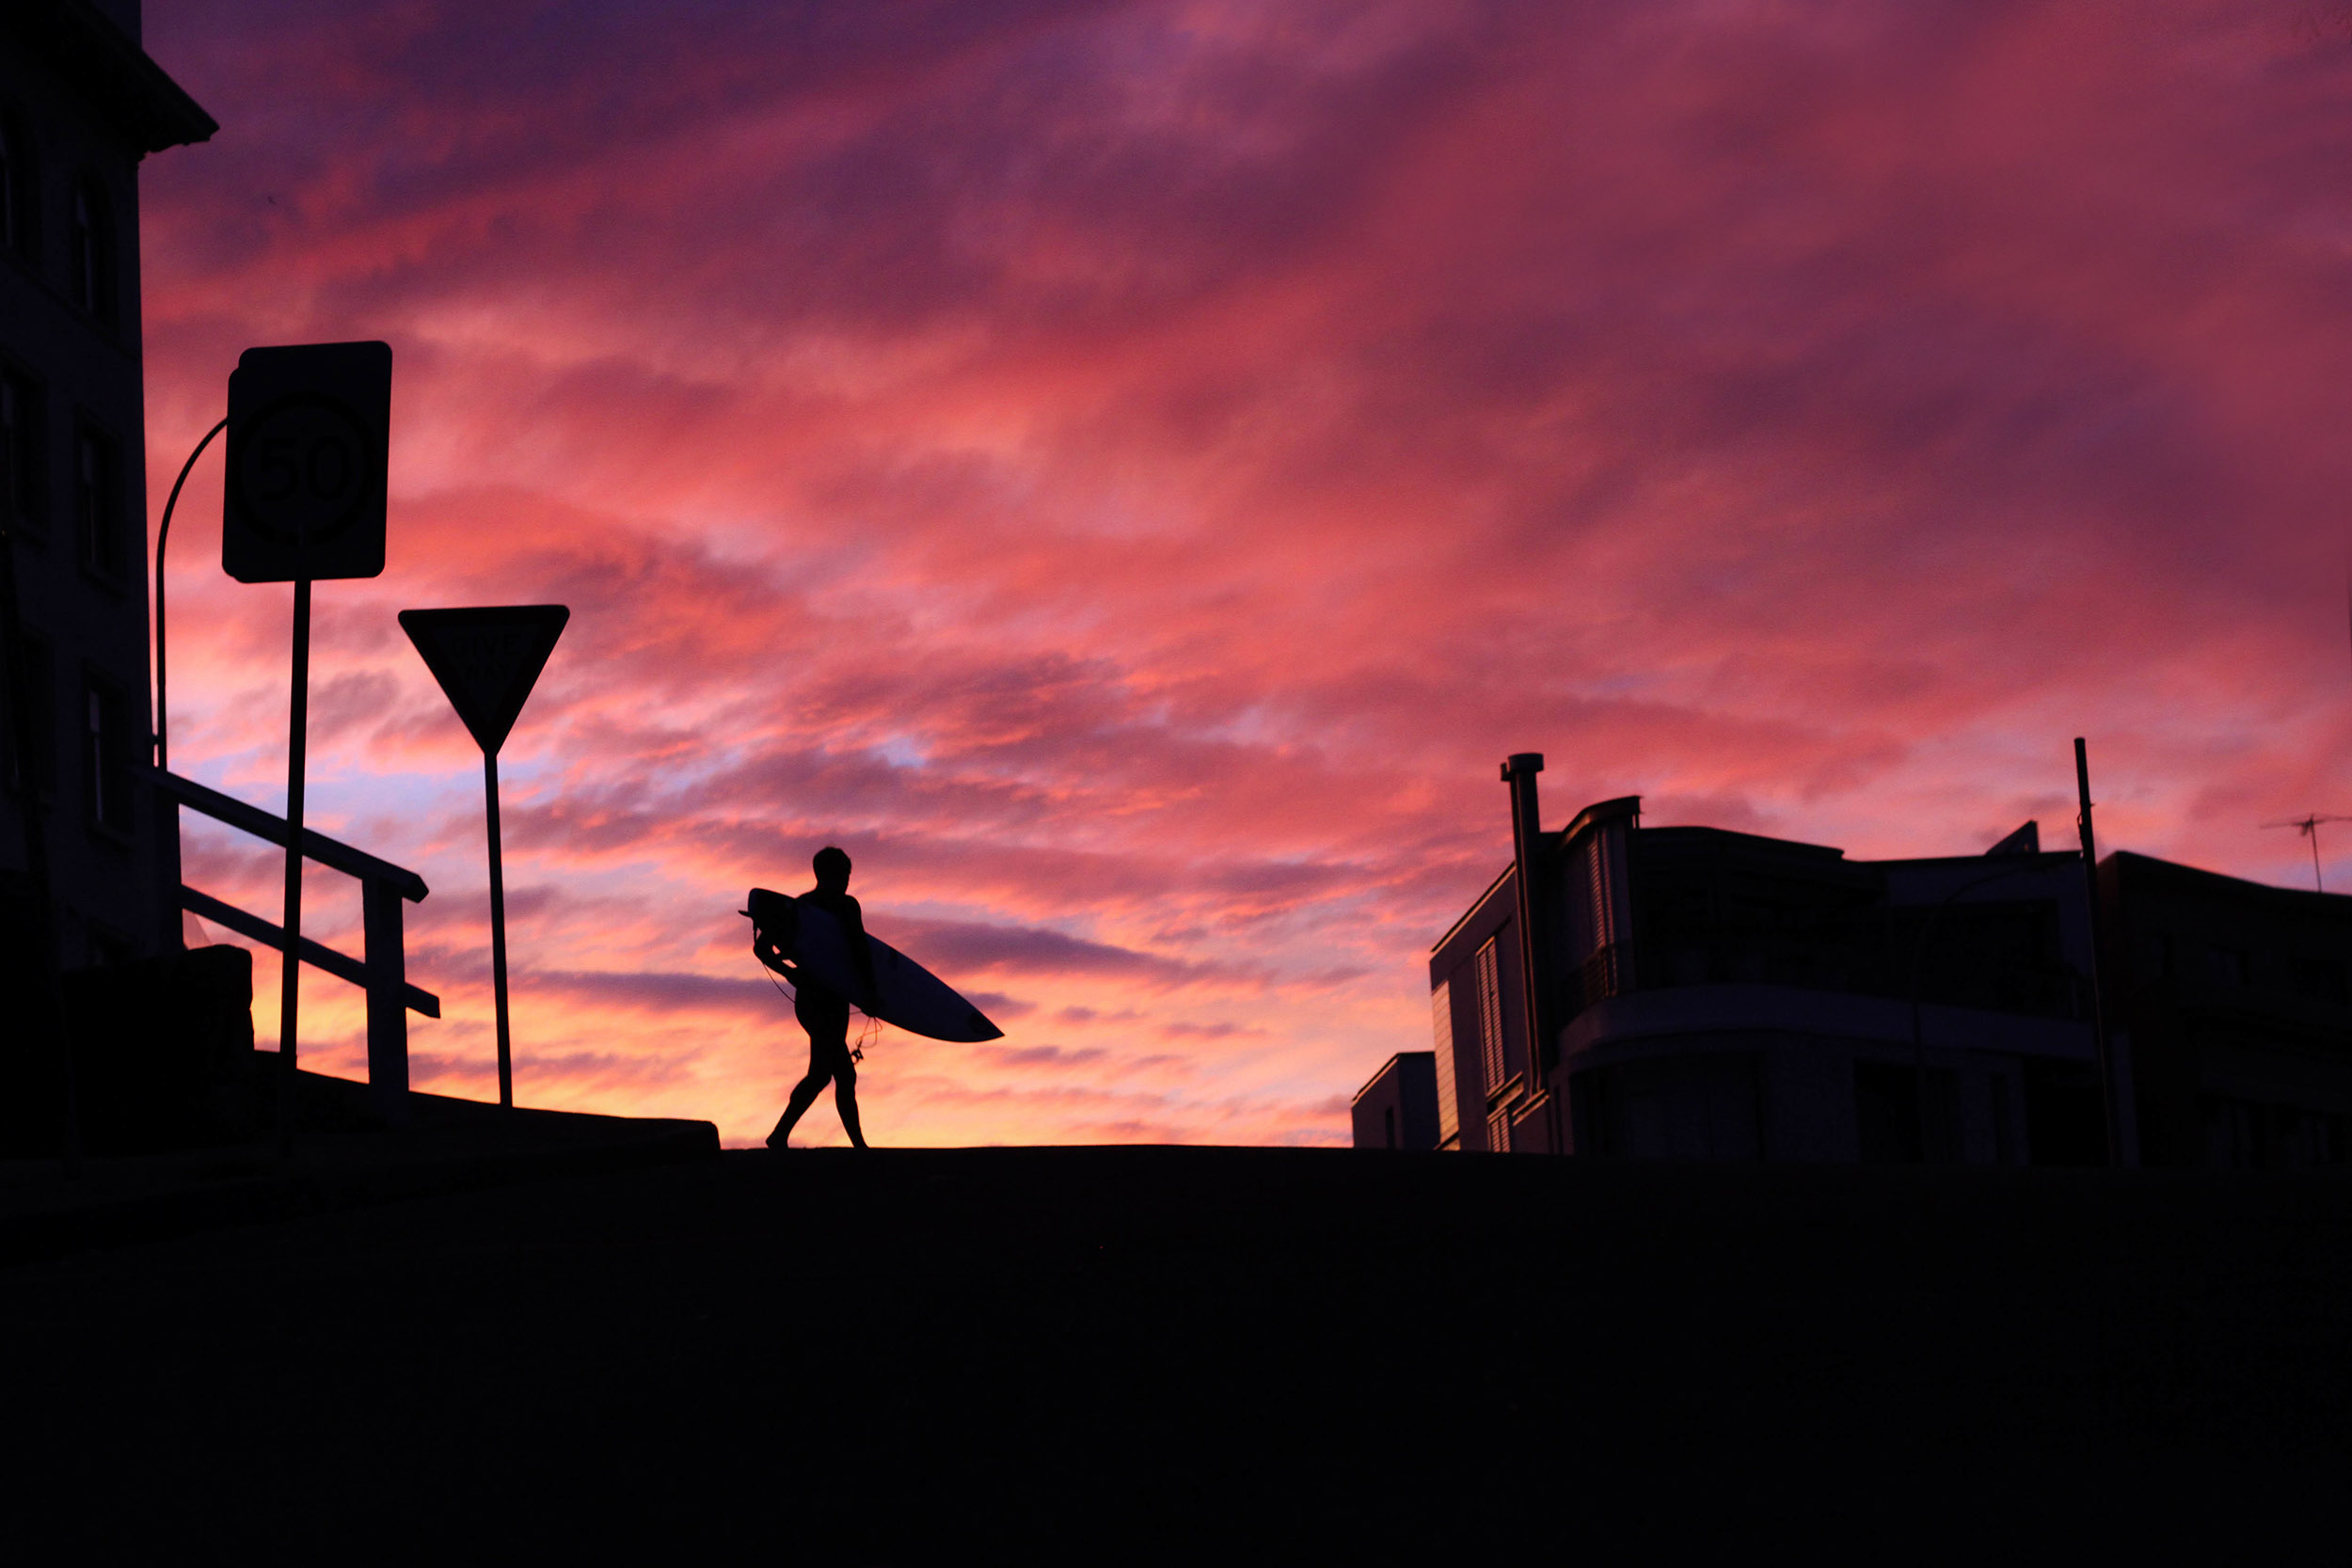 Surfer holding surfboard silhouetted against fiery red sunset sky walking across the pier in Bondi Beach